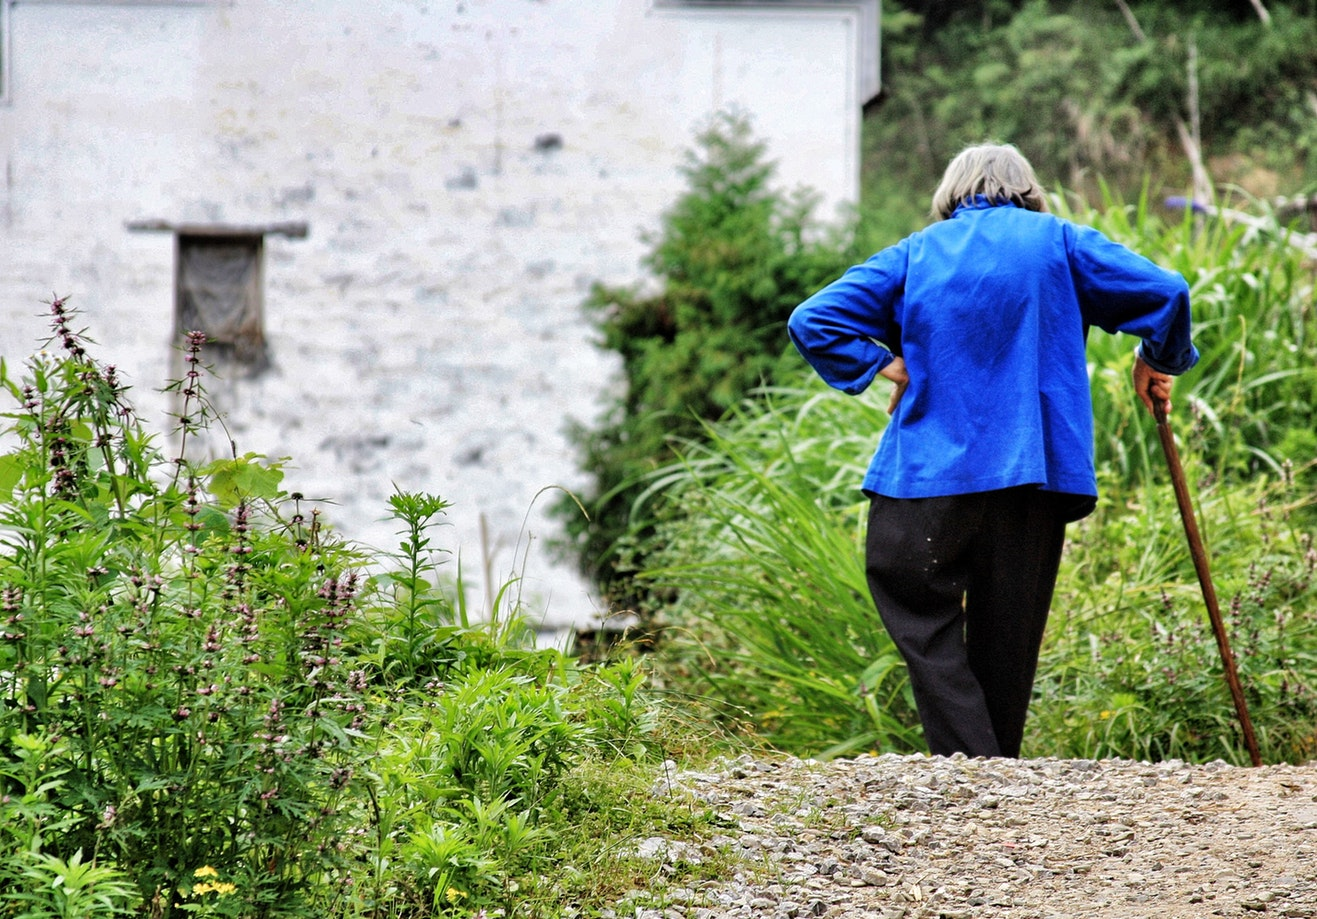 An older woman with alzheimers walking outside with a cane